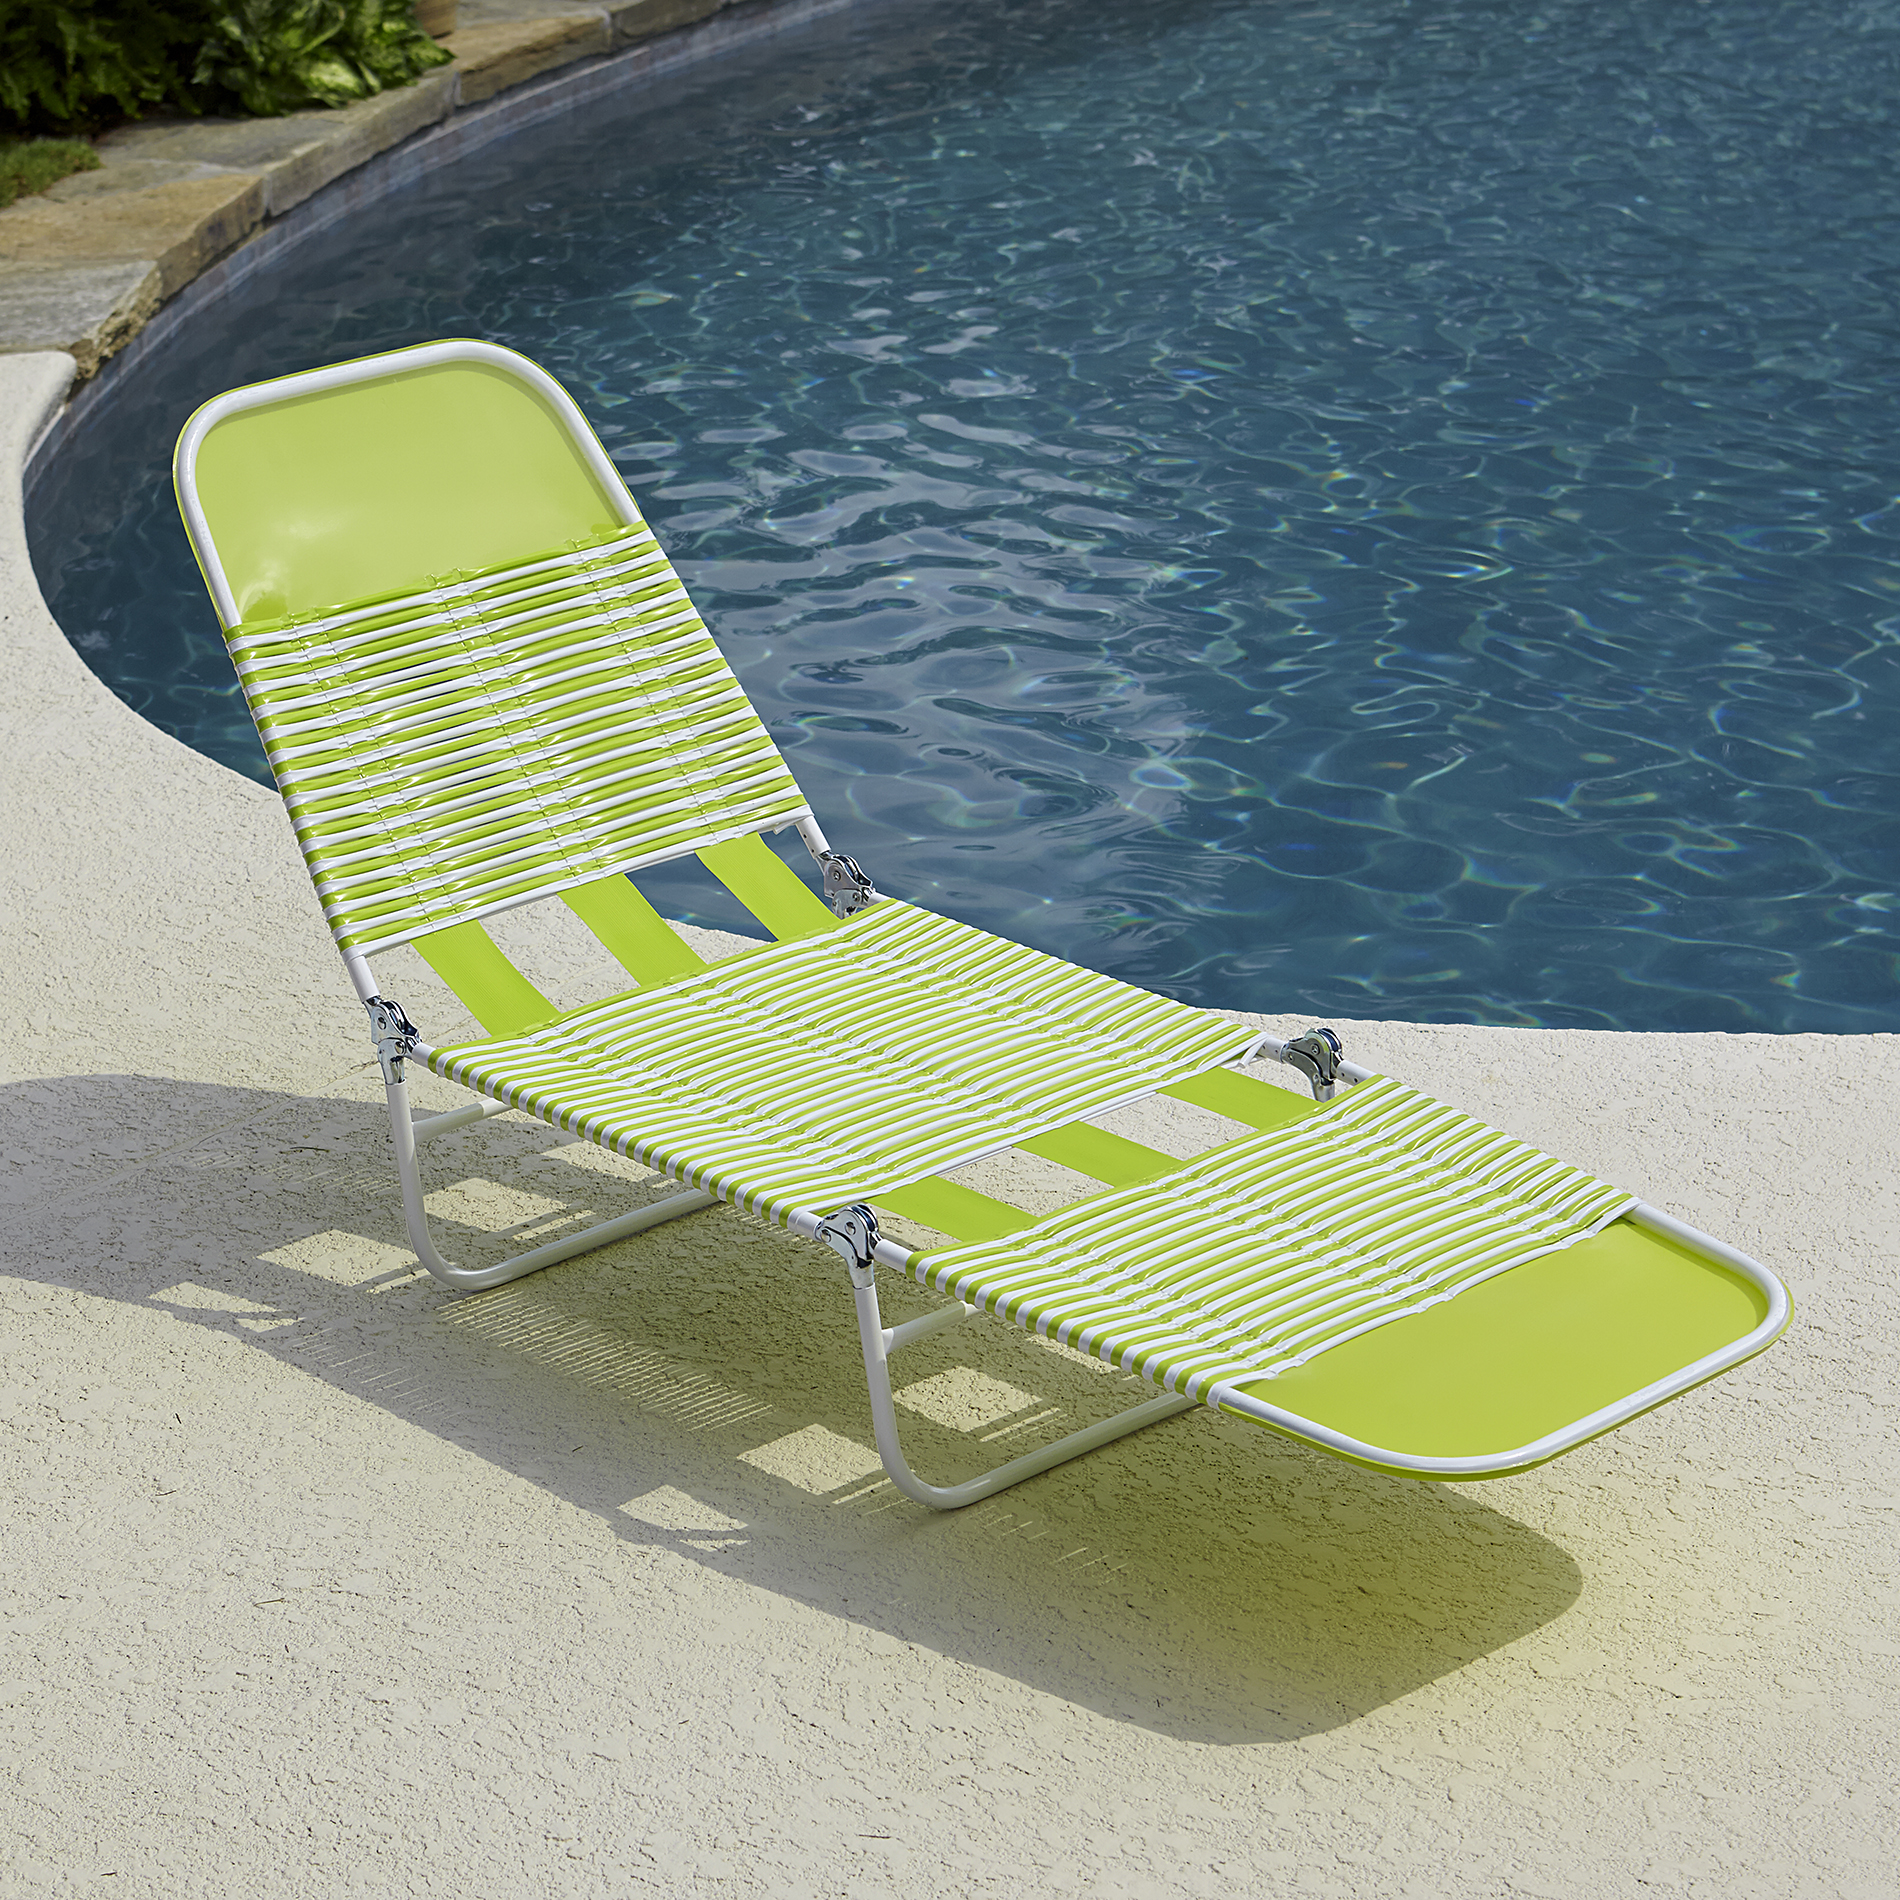 Pvc Chaise Lounge- Green - Outdoor Living Patio